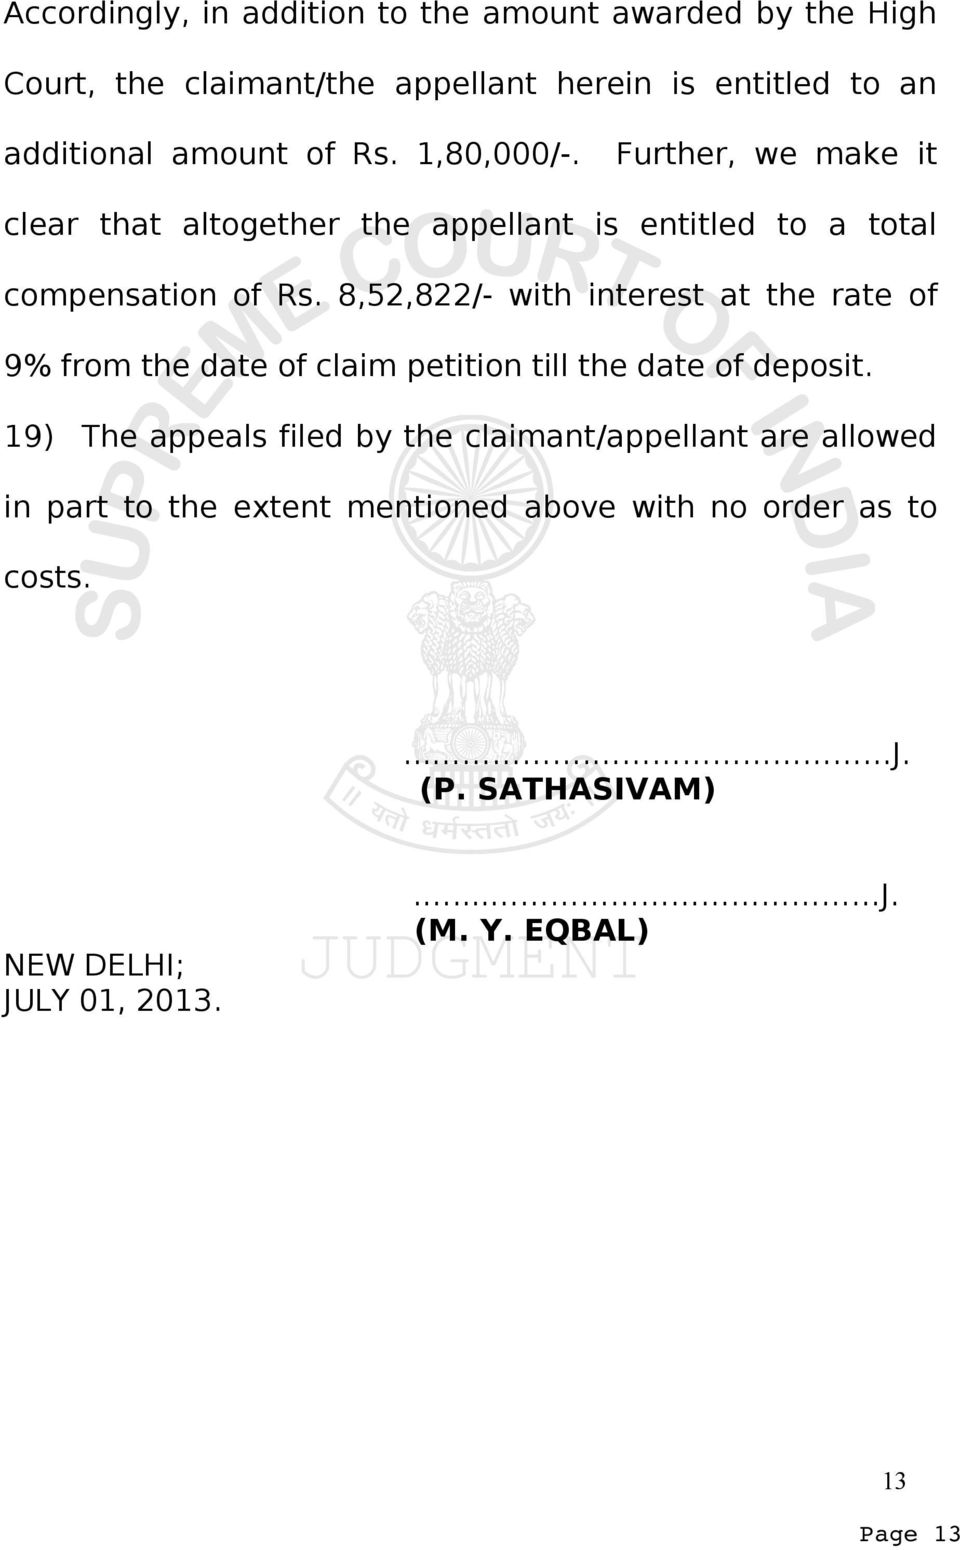 8,52,822/- with interest at the rate of 9% from the date of claim petition till the date of deposit.